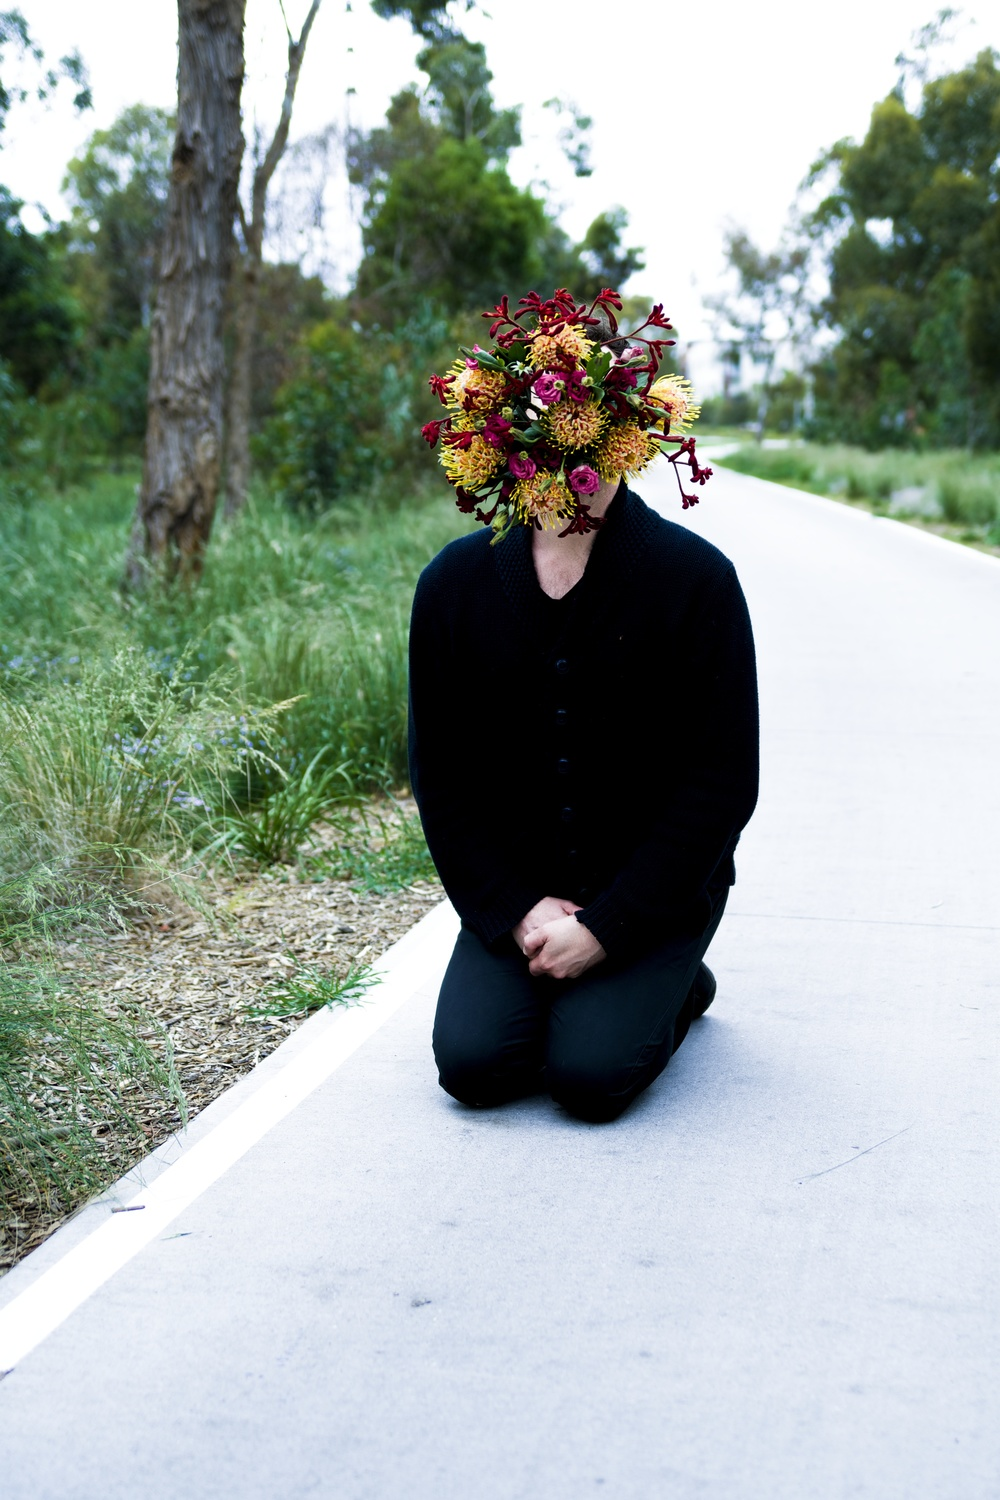 Boy Flower Head.jpg